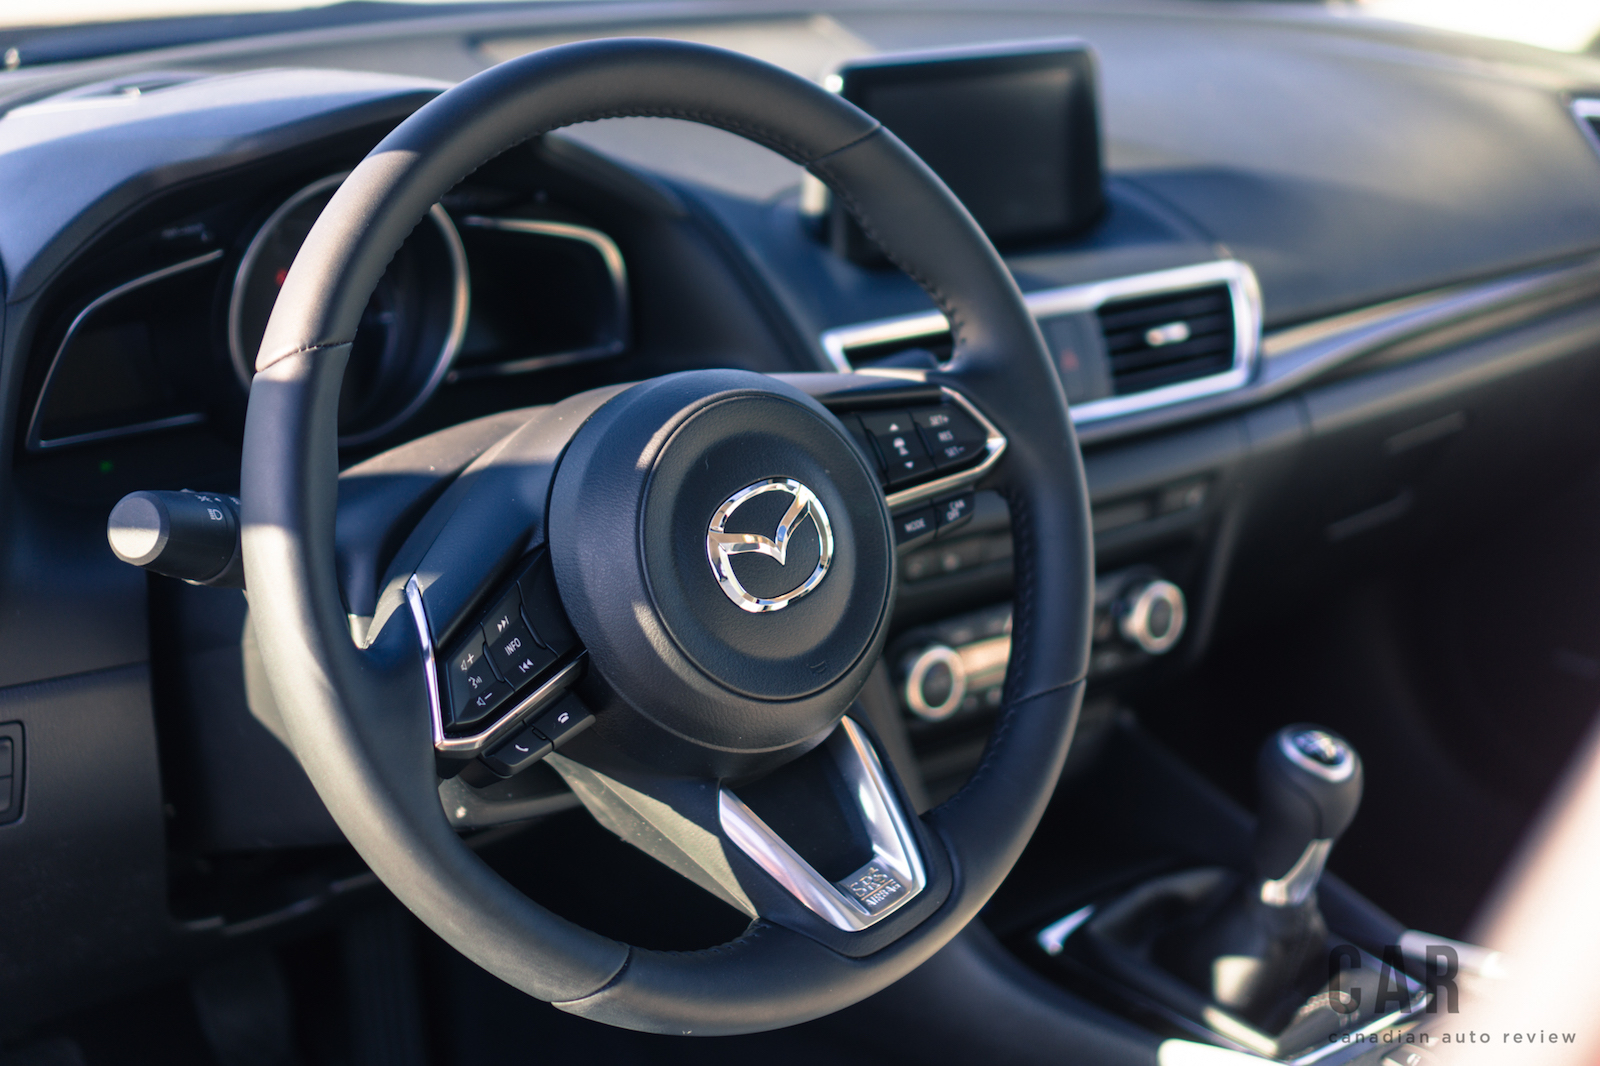 Review 2017 mazda3 gt manual canadian auto review for Mazda 3 2017 hatchback interior